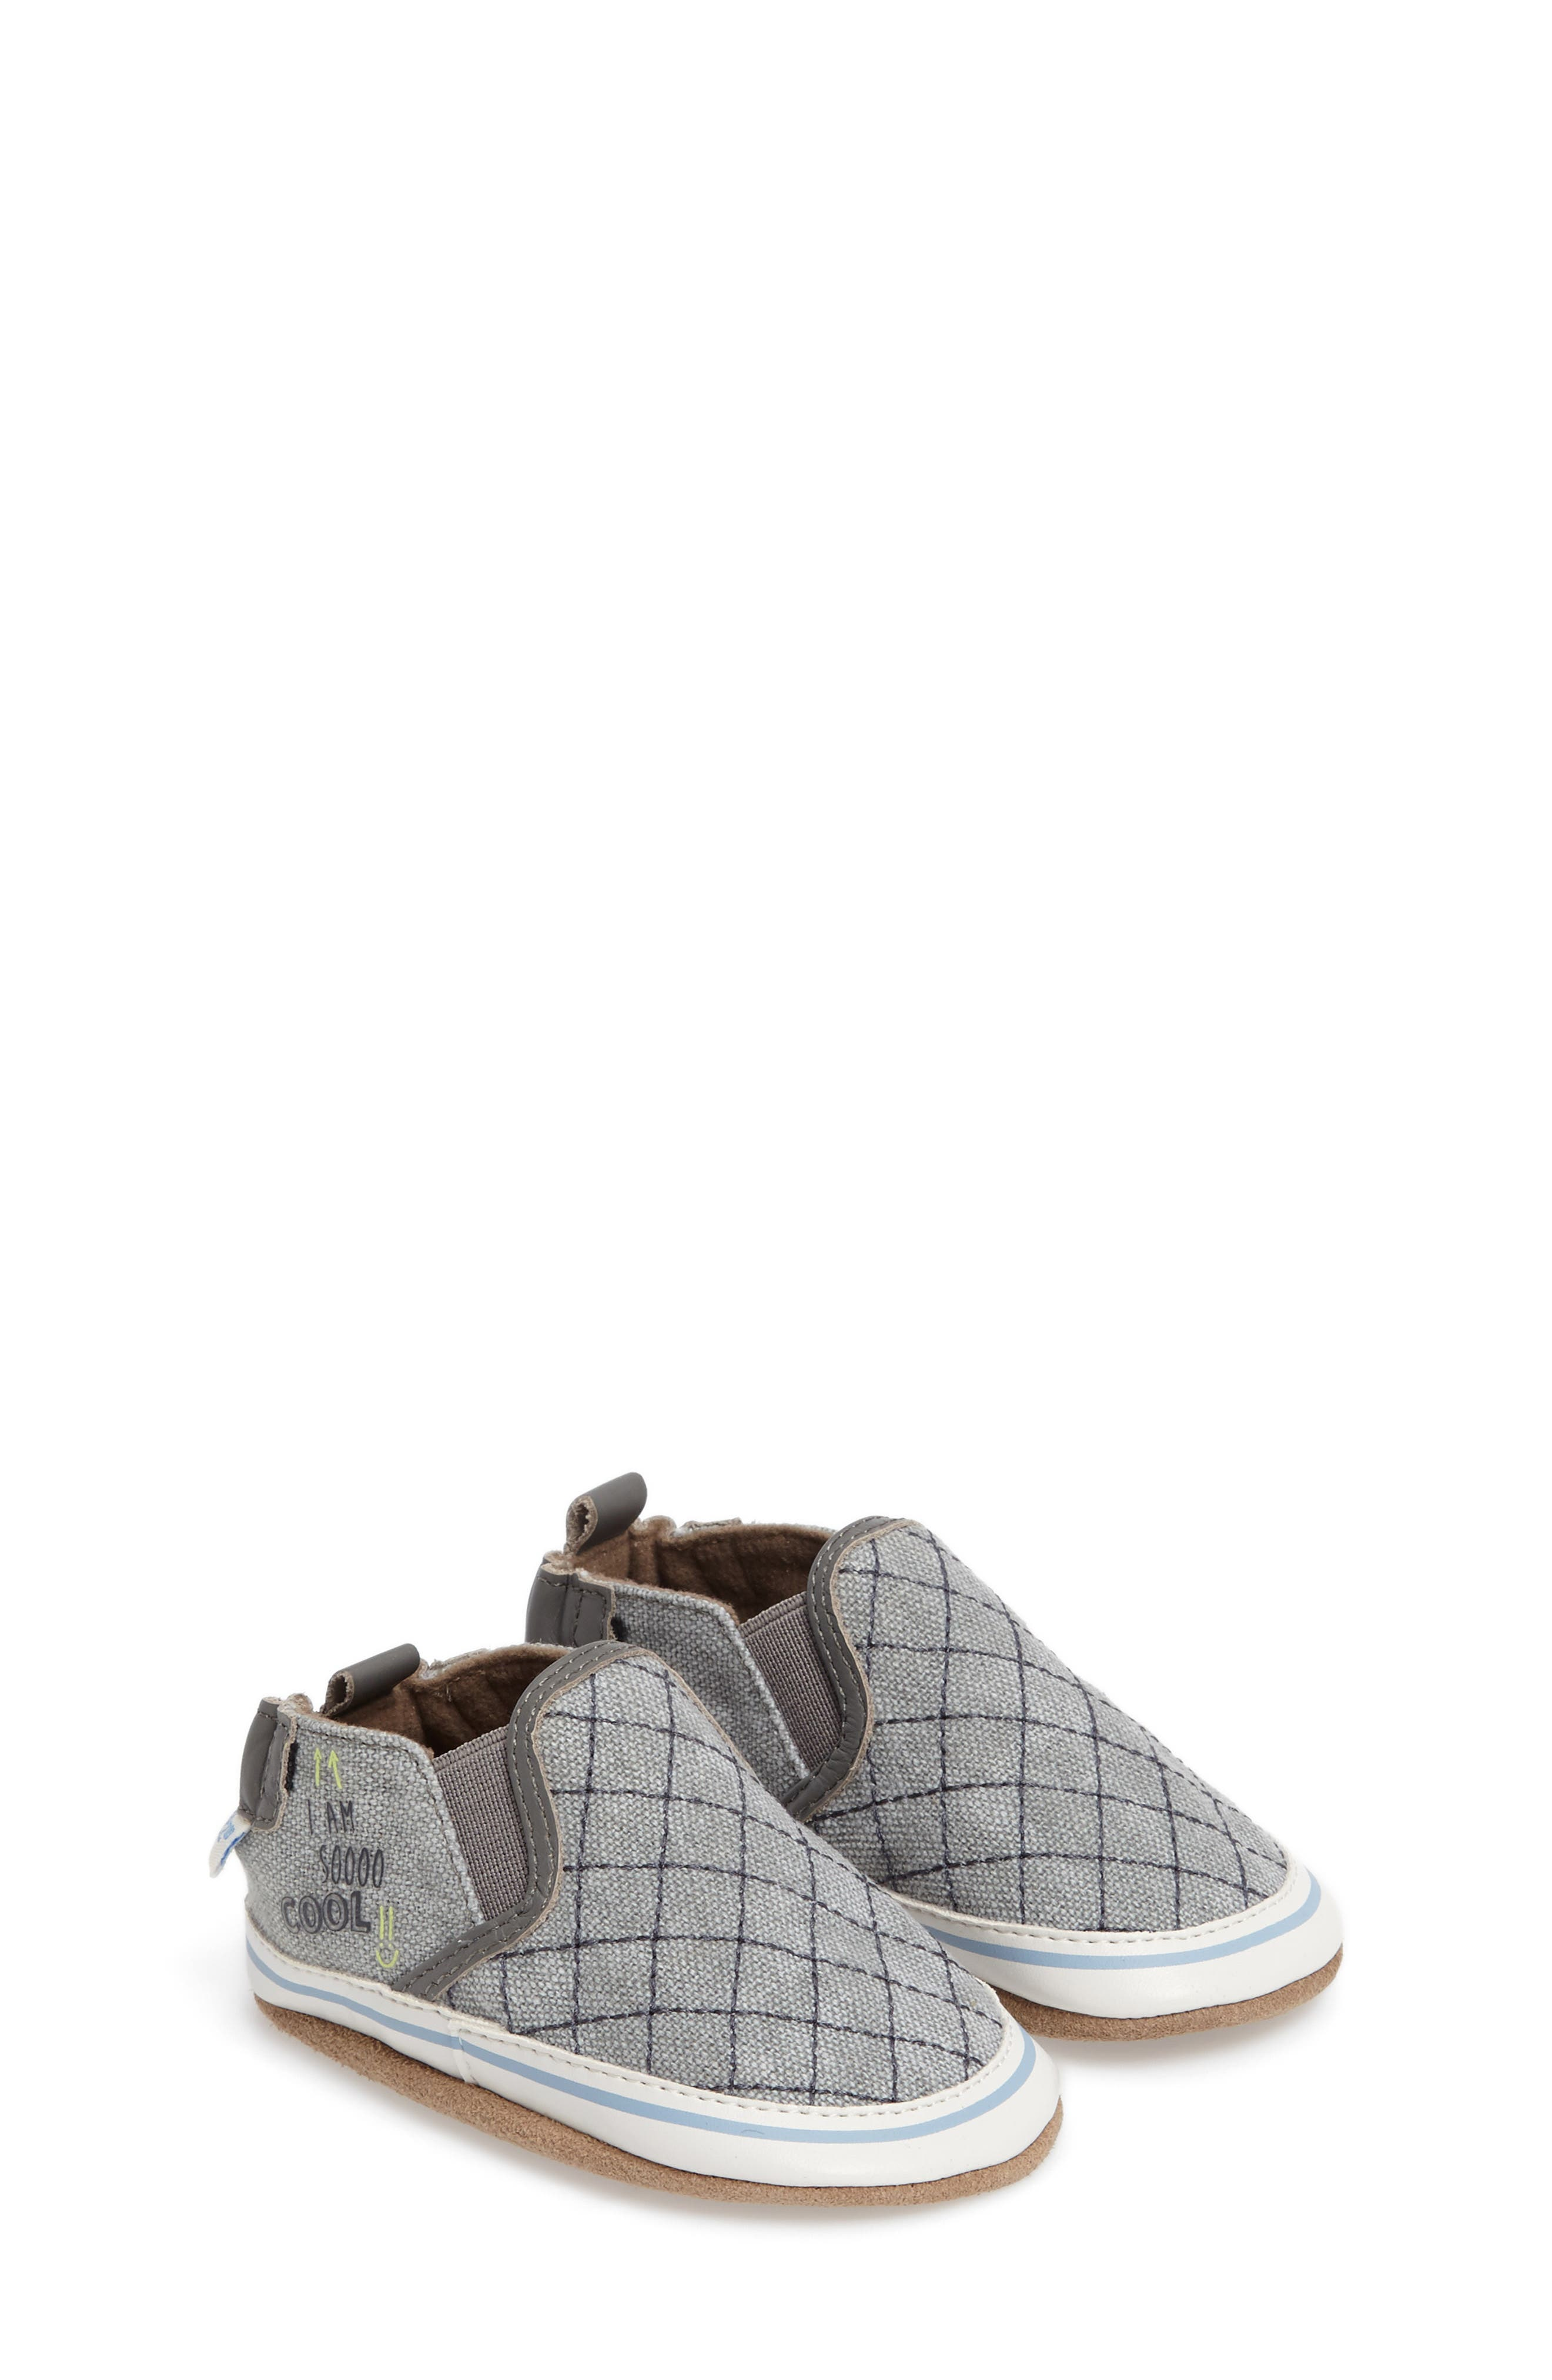 Robeez® Liam - Cool Dude Crib Shoe (Baby)